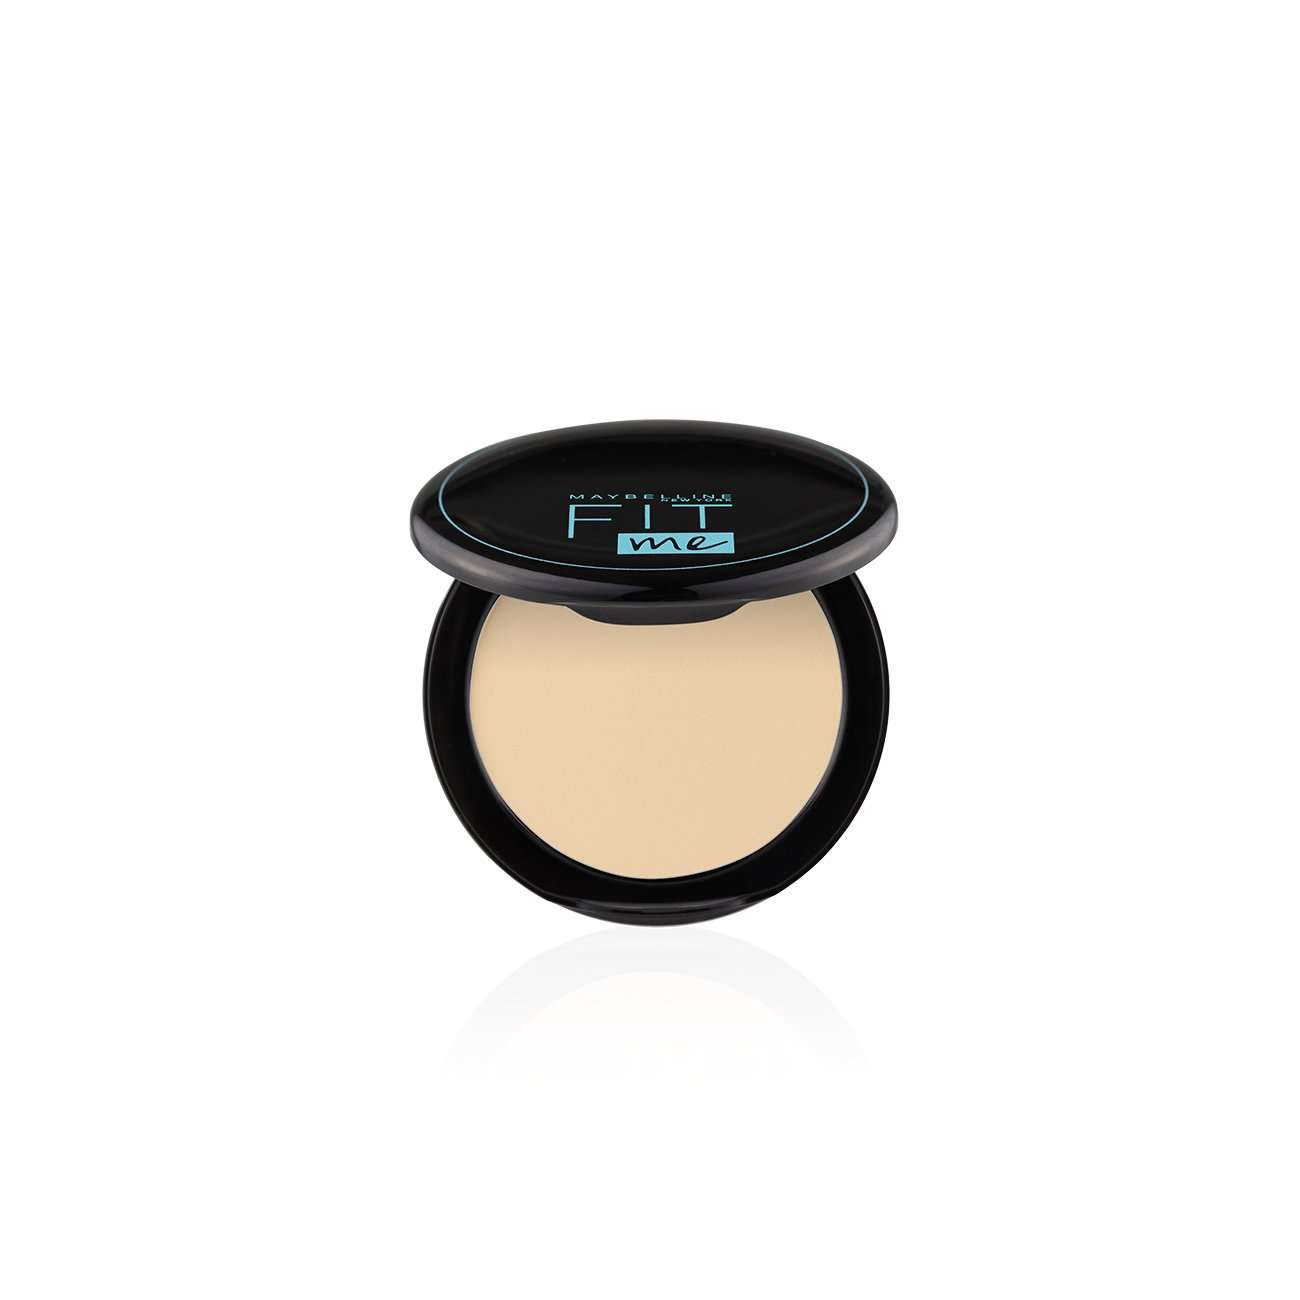 Maybelline New York Fit Me Compact Powder 109 Light Ivory 6gm